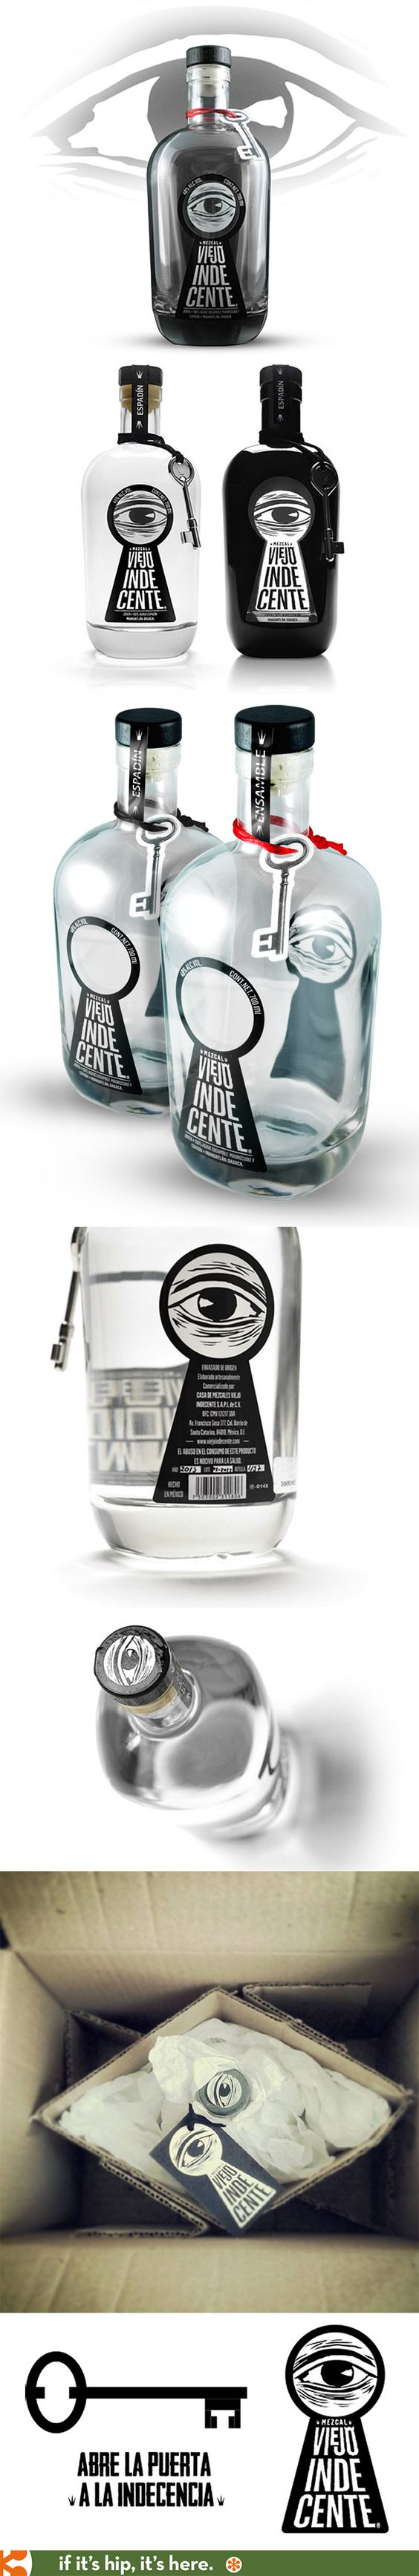 Fabulous bottle designs and graphics for Viejo Indecente Mezcal.